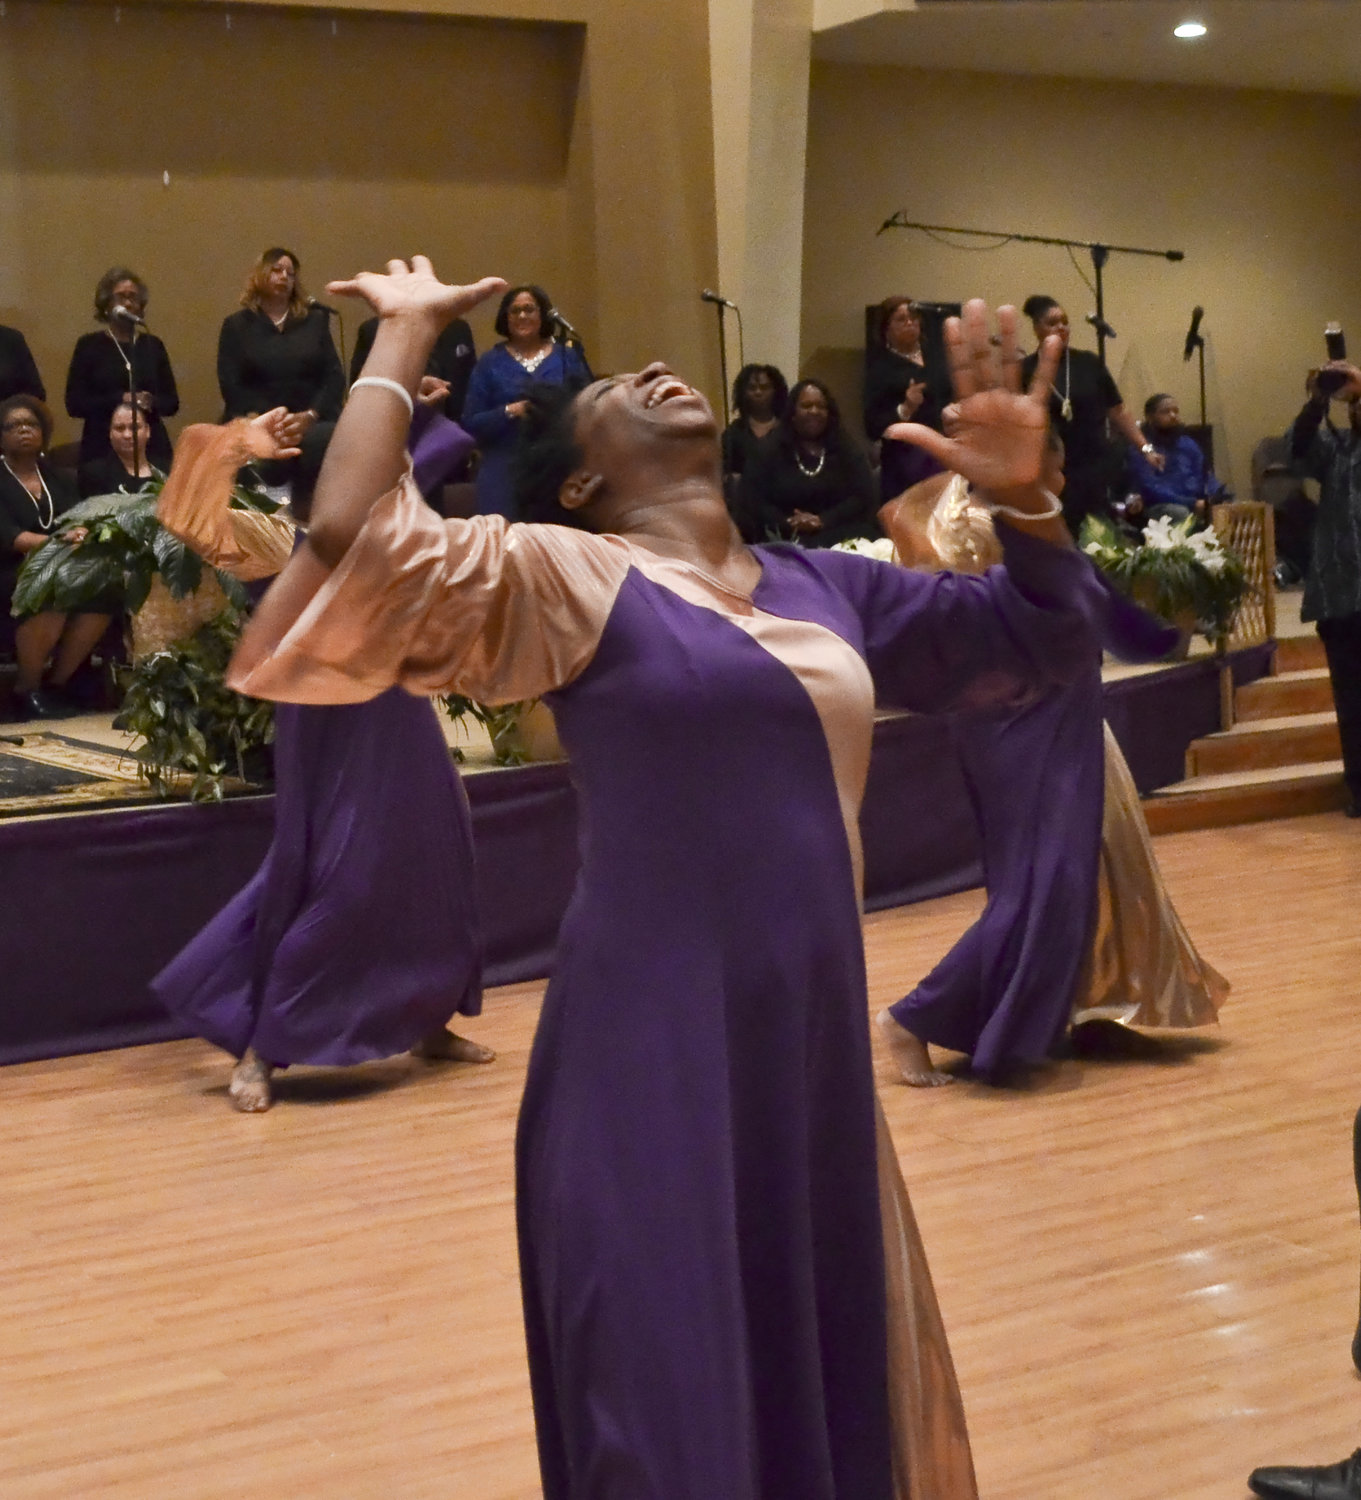 Members of the Eternal Praise Dance Ministry exuberantly expressed their joy, and their faith.